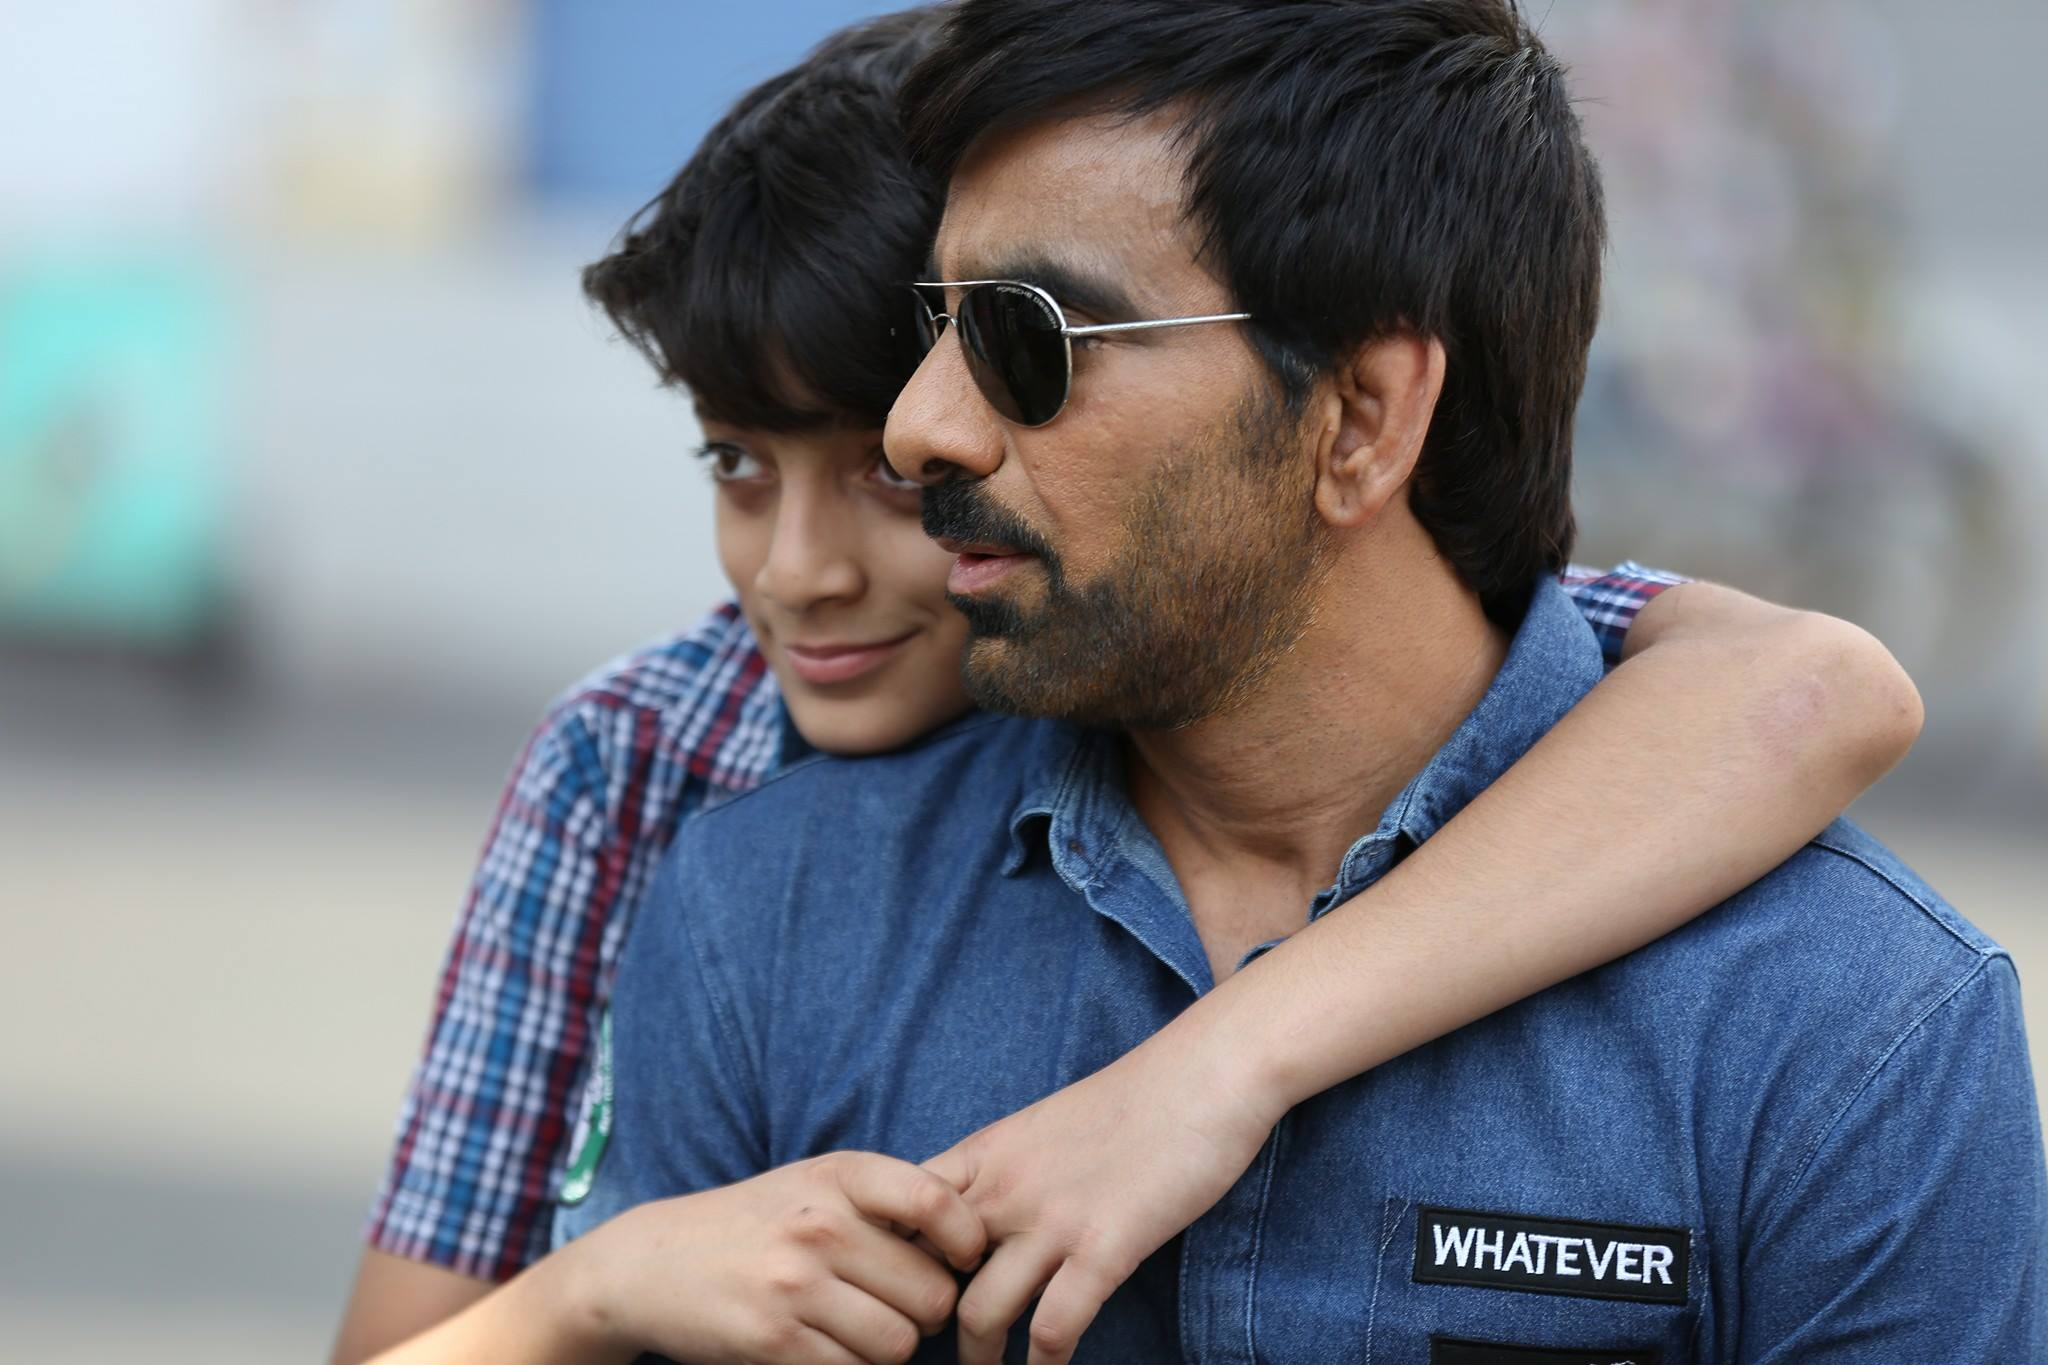 ravi teja kalyani teja son mahadhan latest new hd photos images